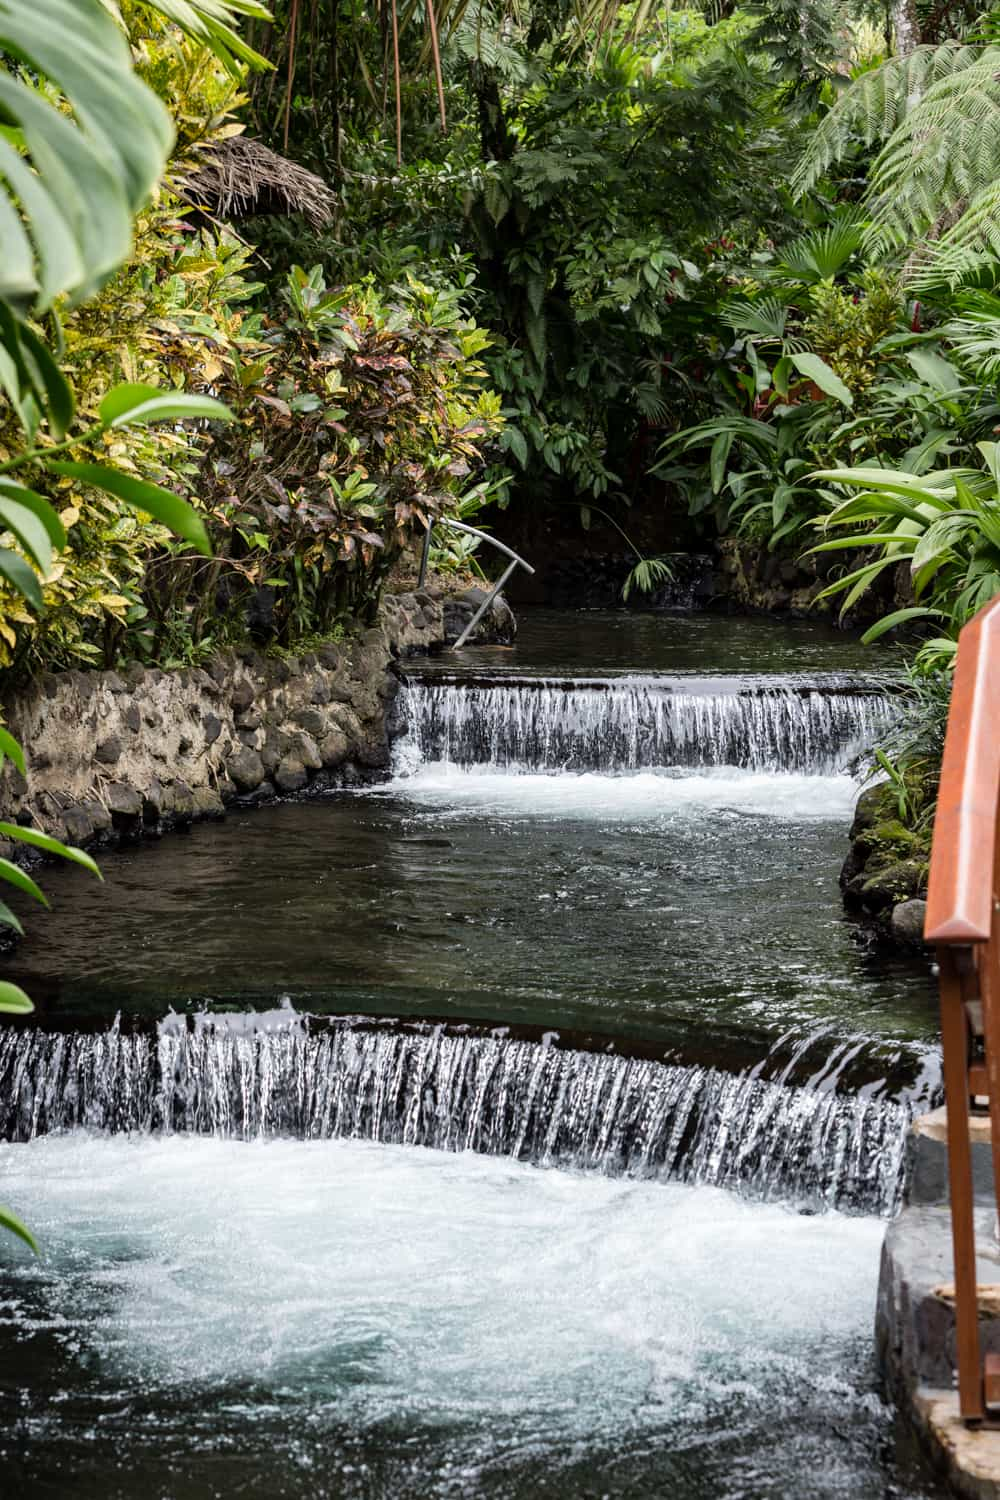 Cascading waterfalls in thermal springs garden.